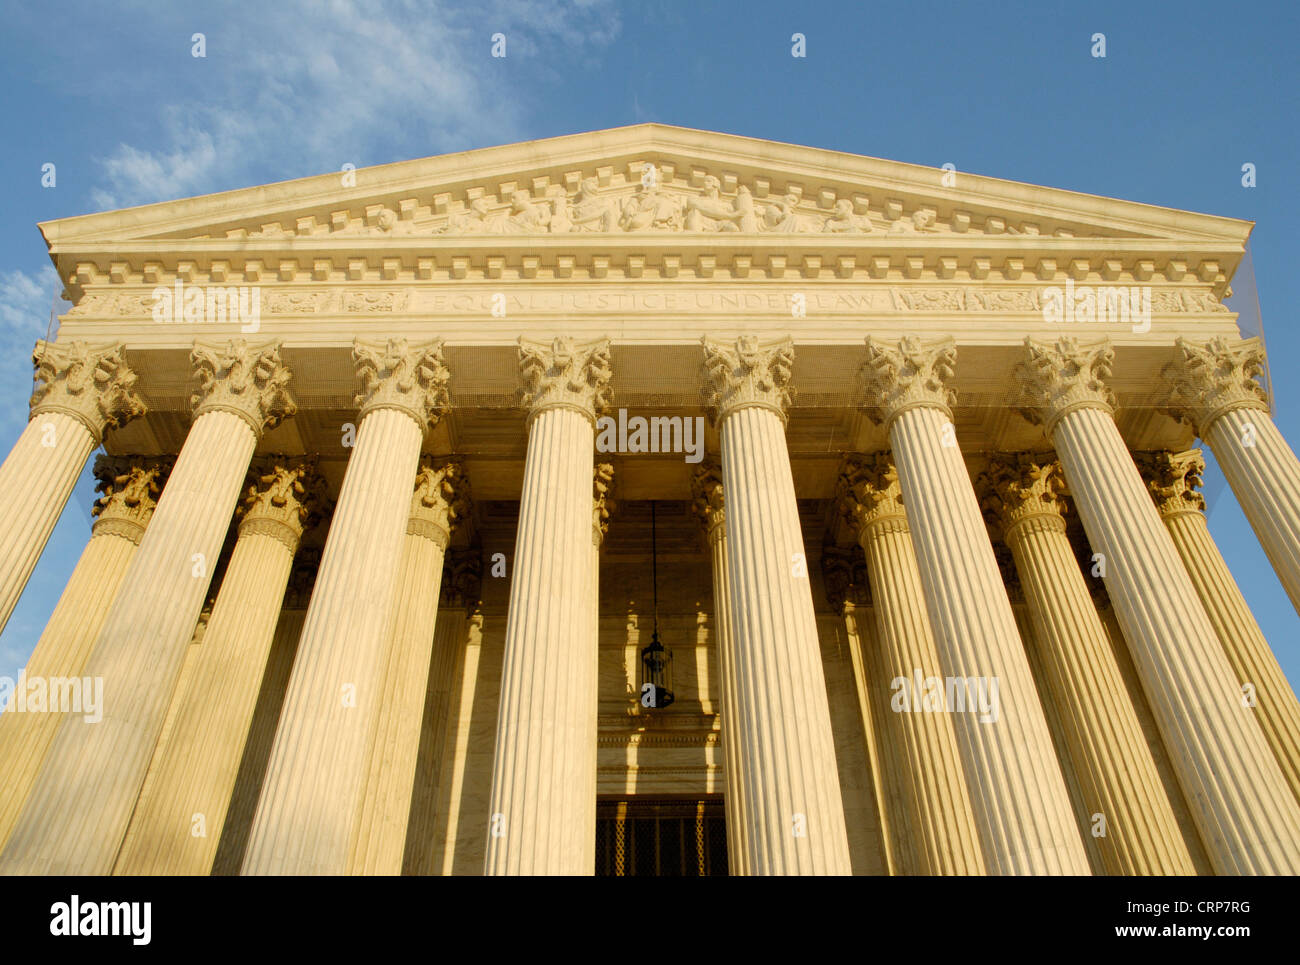 United States Supreme Court building - Stock Image